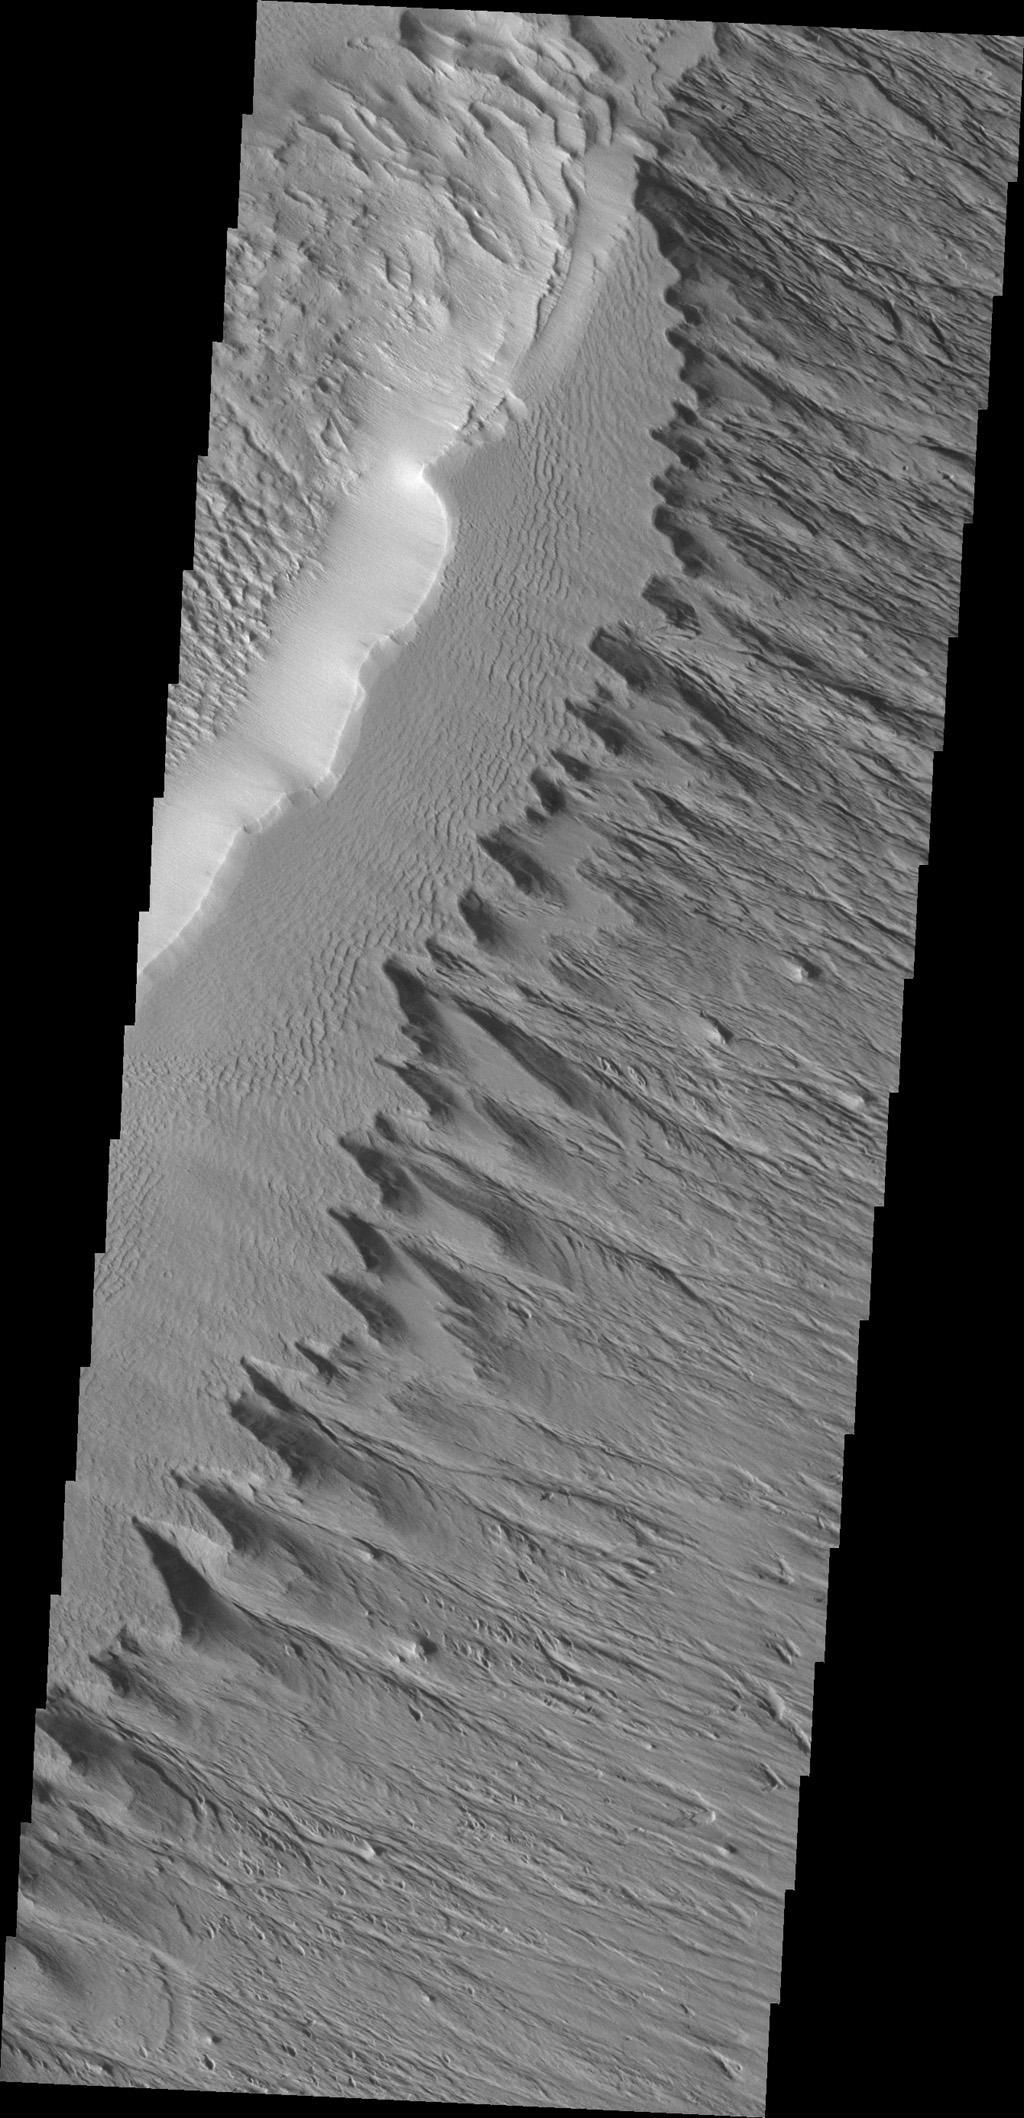 This ridge of material on the northern end of Gordii Dorsum is being reduced in size by the erosive effect of the wind in this image captured by NASA's Mars Odyssey.